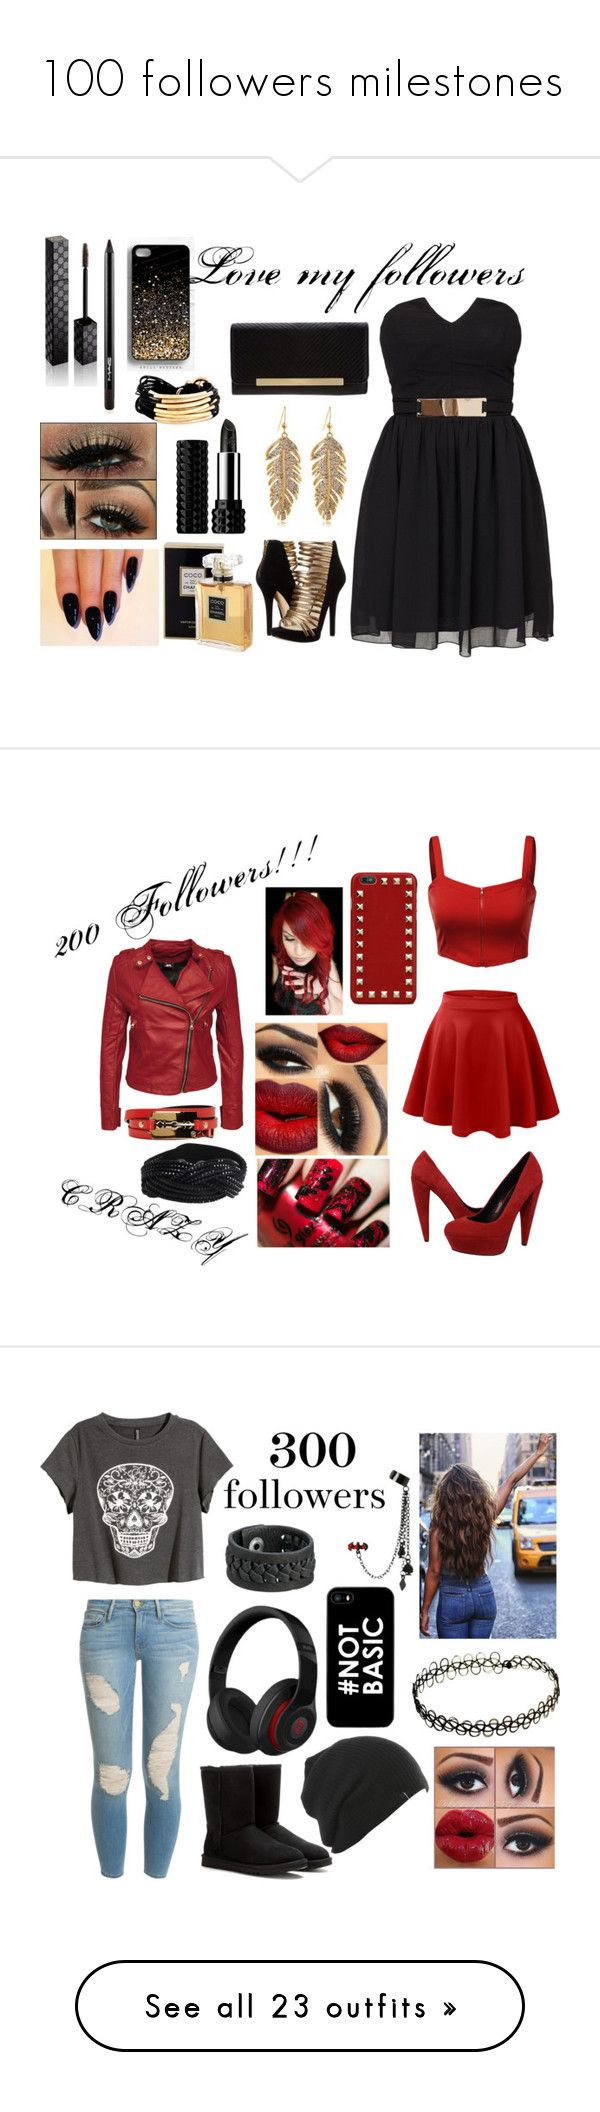 """""""100 followers milestones"""" by musicmelody1 ❤ liked on Polyvore featuring Elise Ryan, MICHAEL Michael Kors, Gillian Julius, Chanel, Gucci, M.A.C, Fiorelli, Kat Von D, LE3NO and J.TOMSON"""